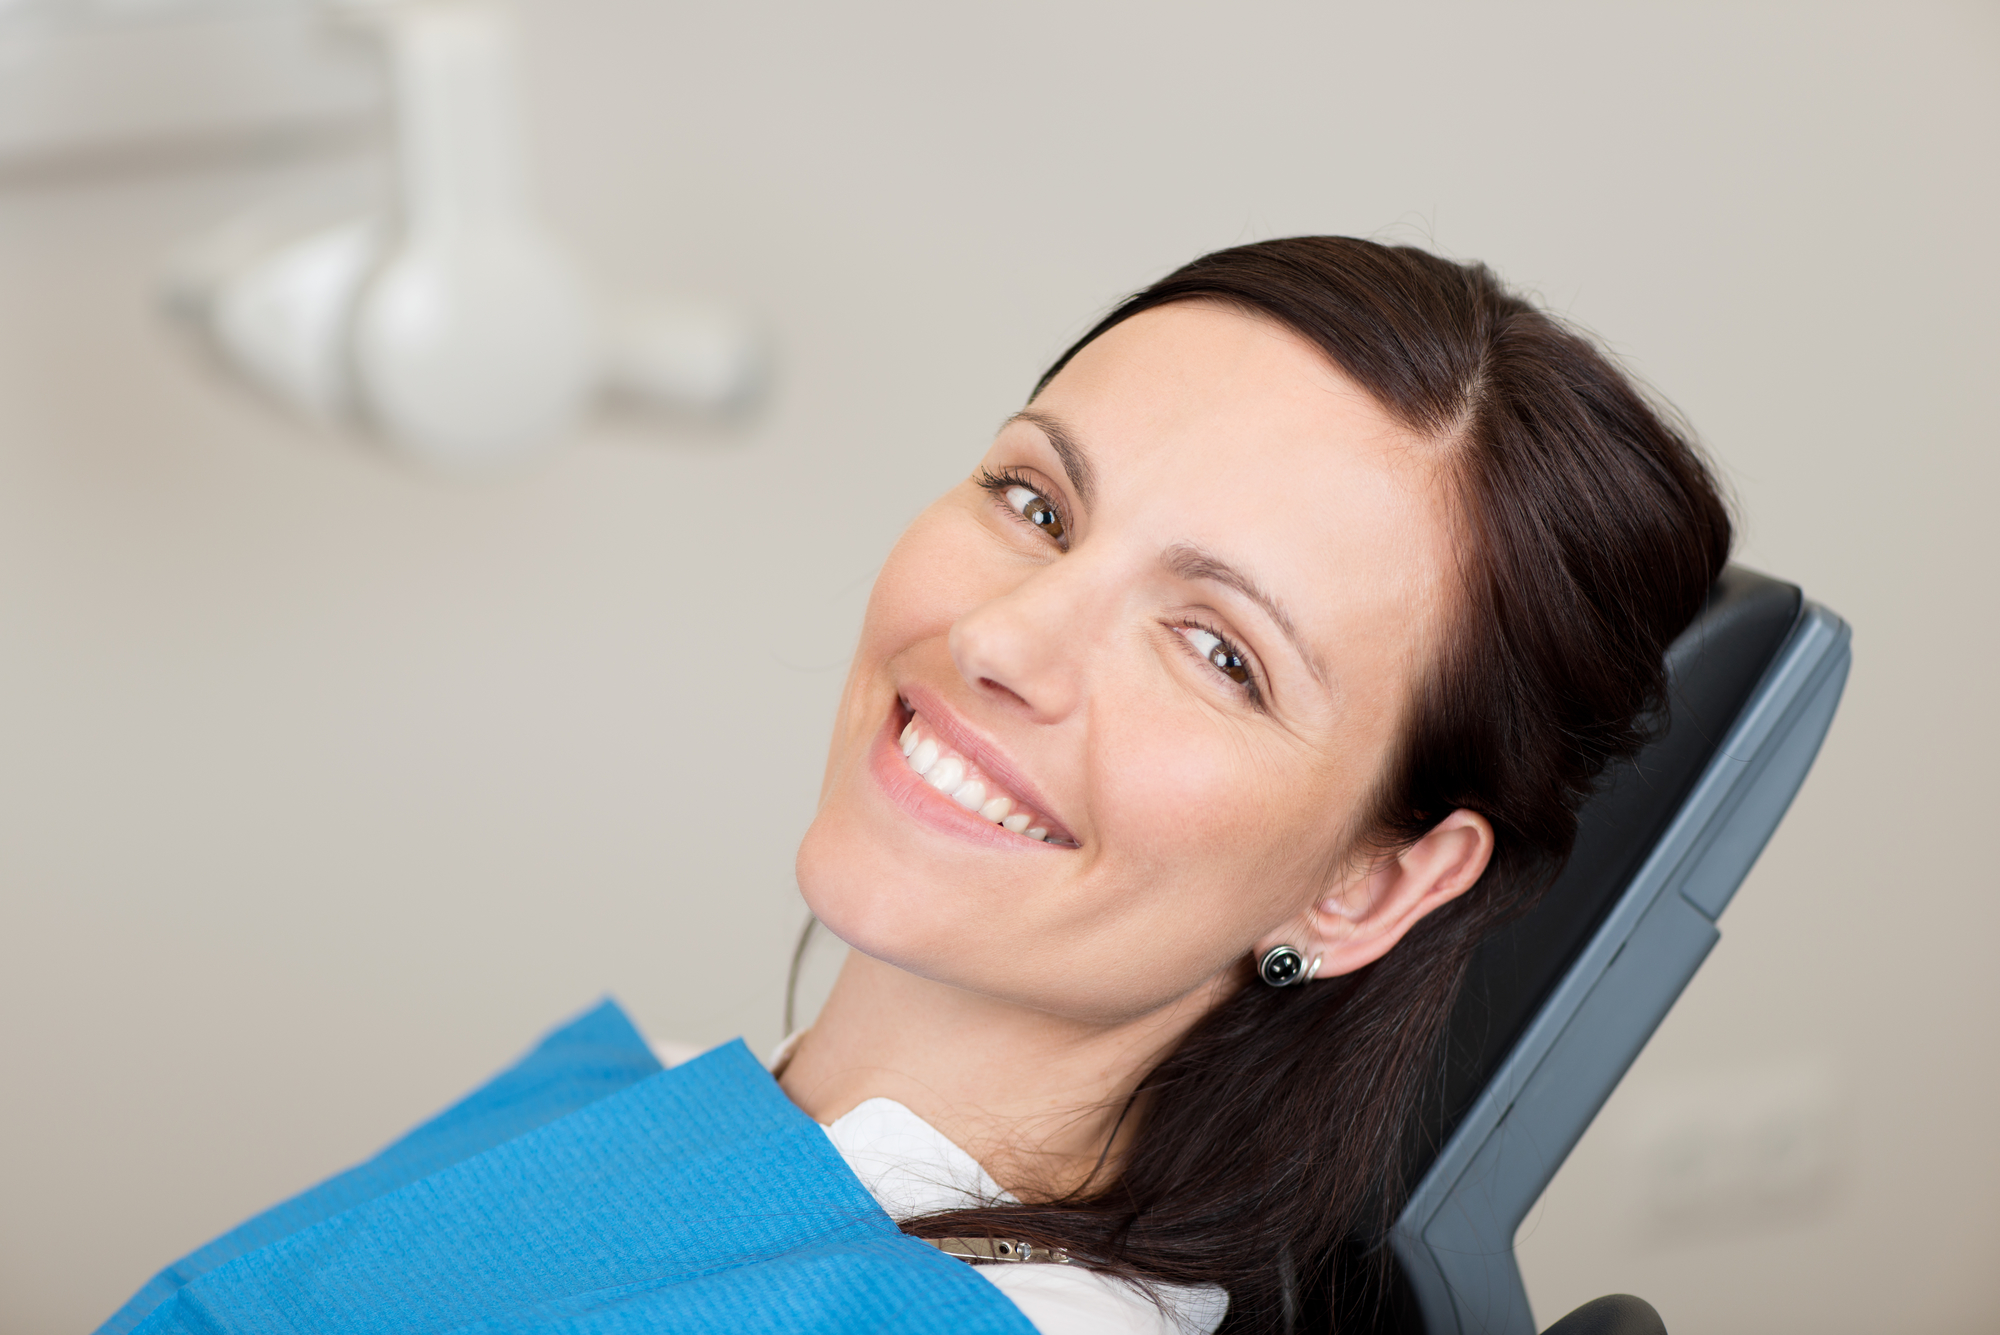 who offers dental implants pembroke pines?